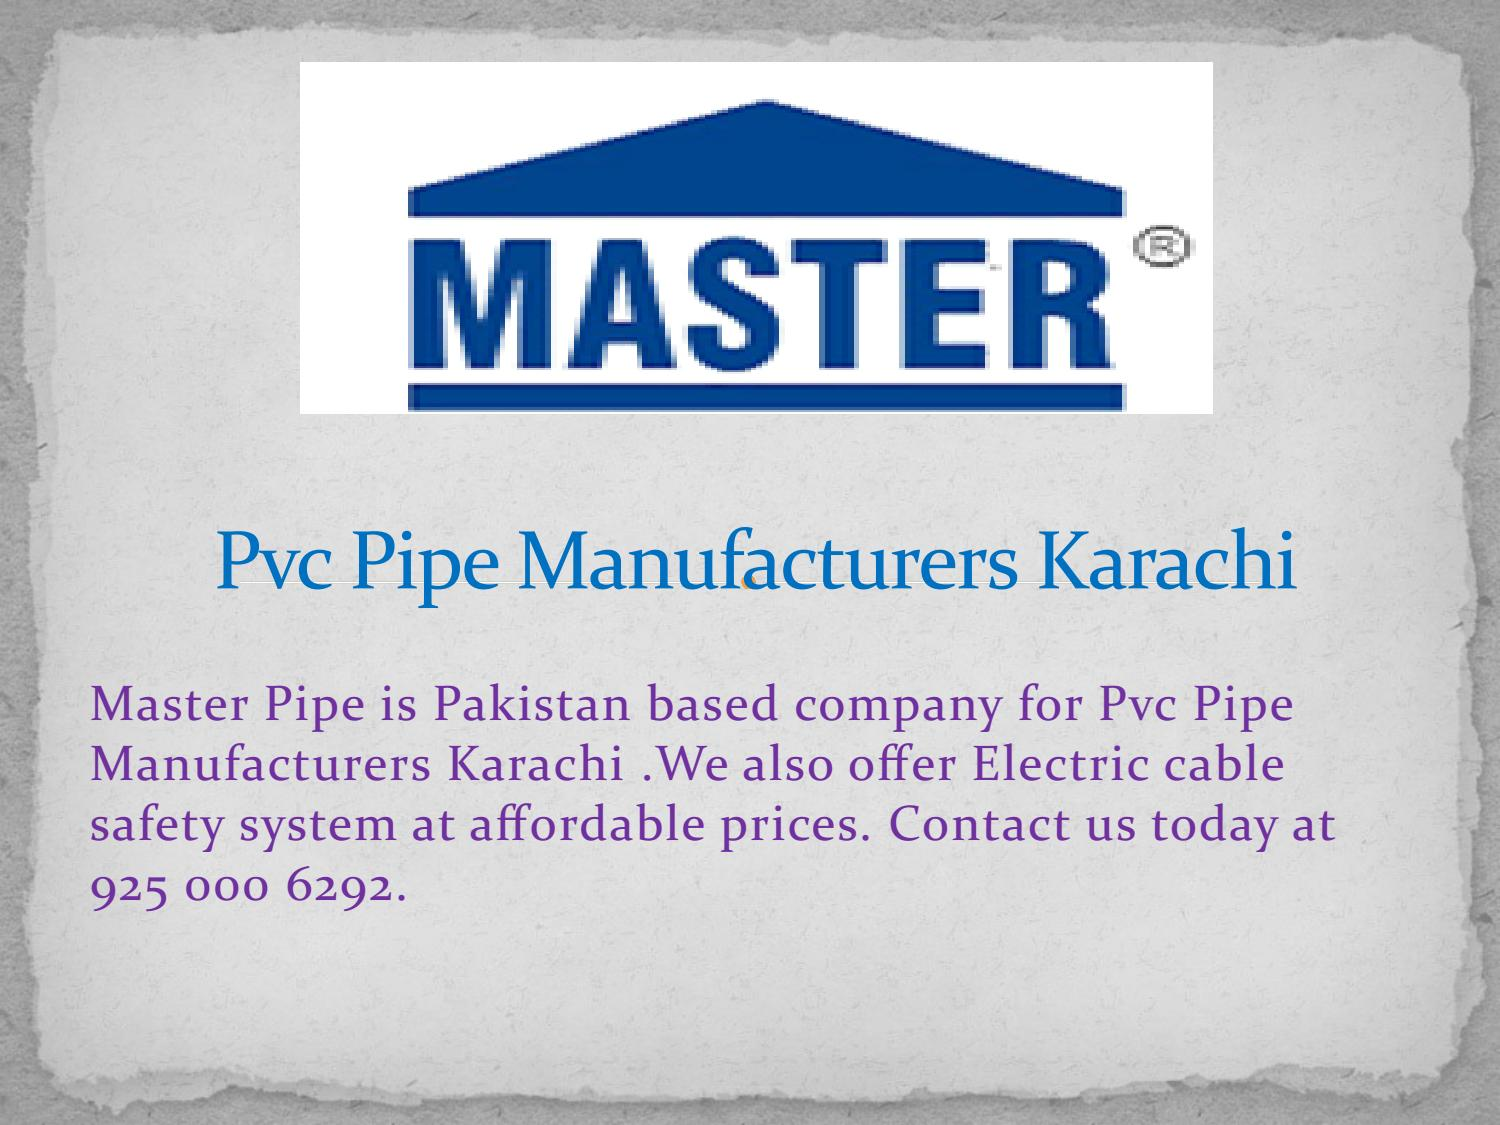 Pvc Pipe Manufacturers Karachi by Master Pipe - issuu